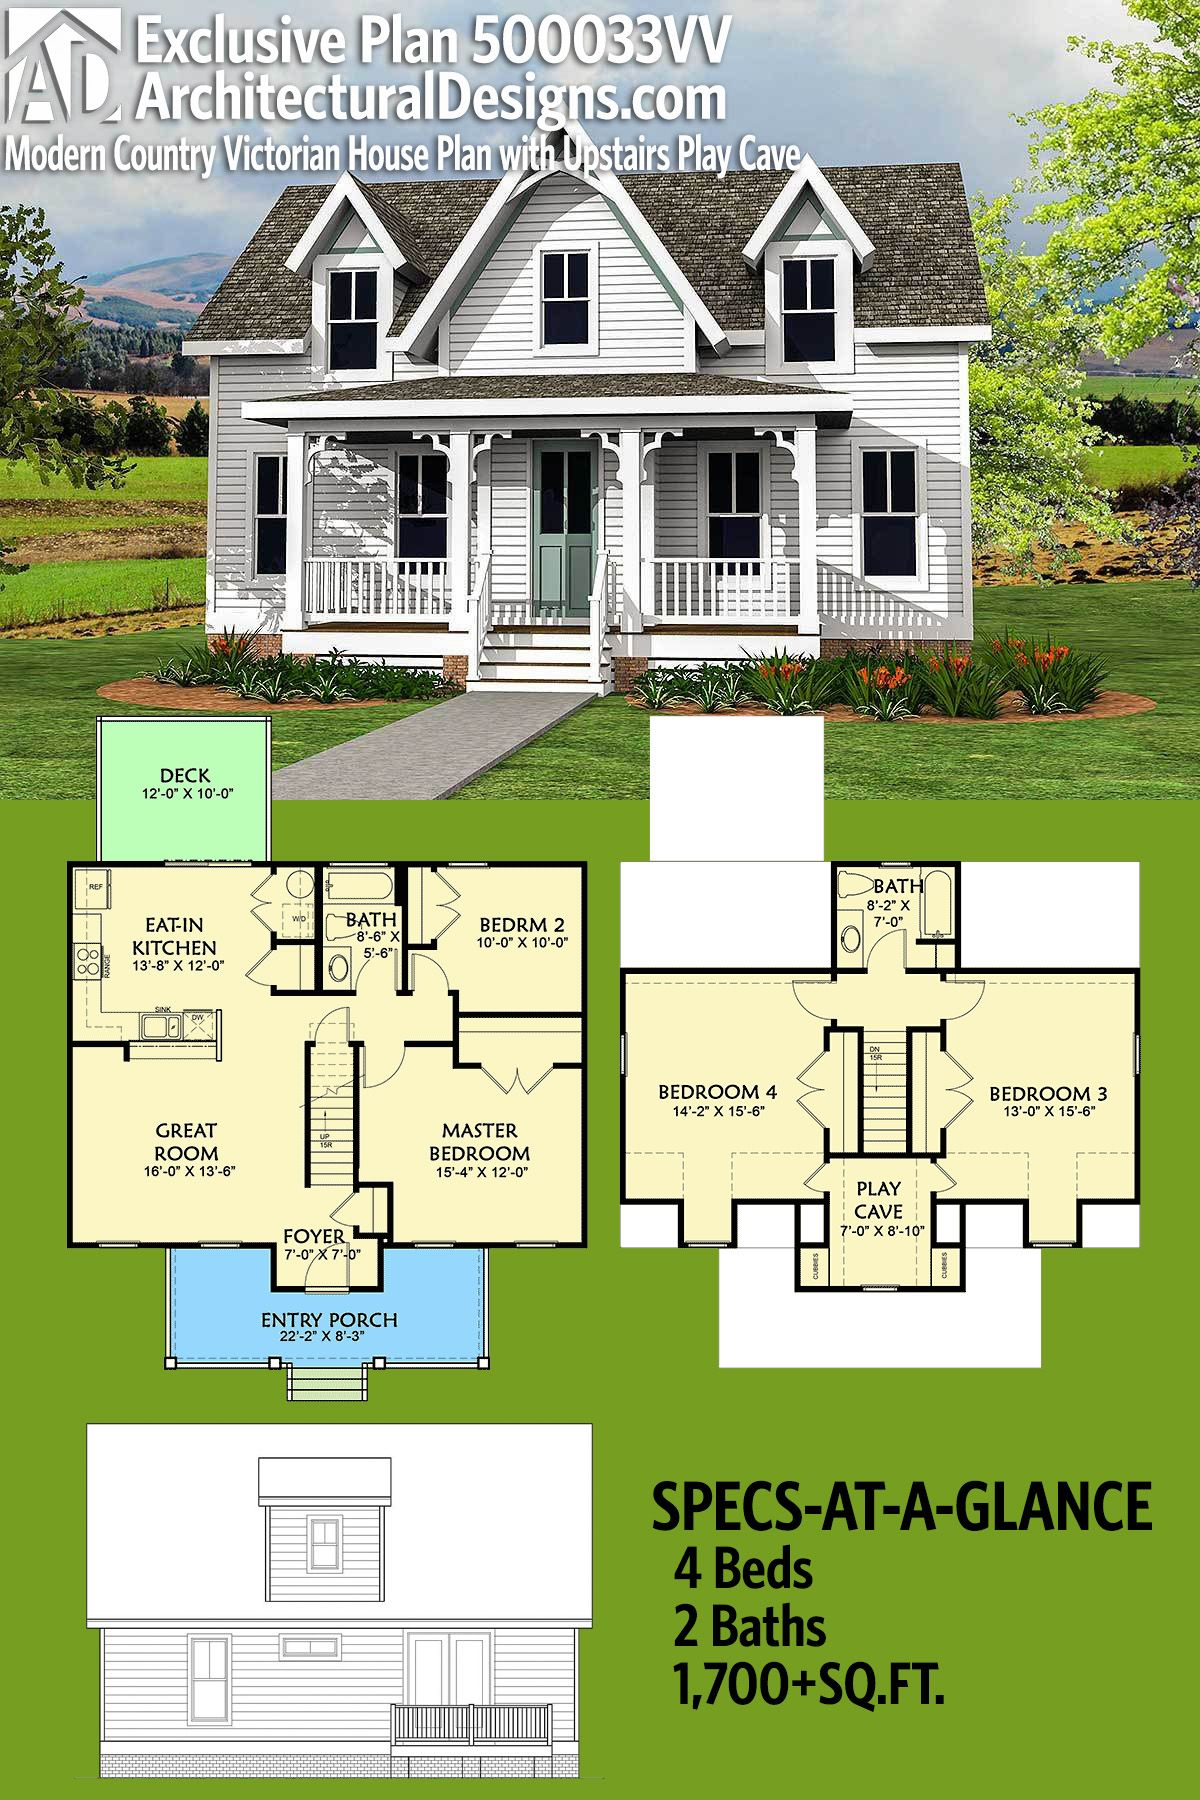 Plan 500033vv Modern Country Victorian House Plan With Upstairs